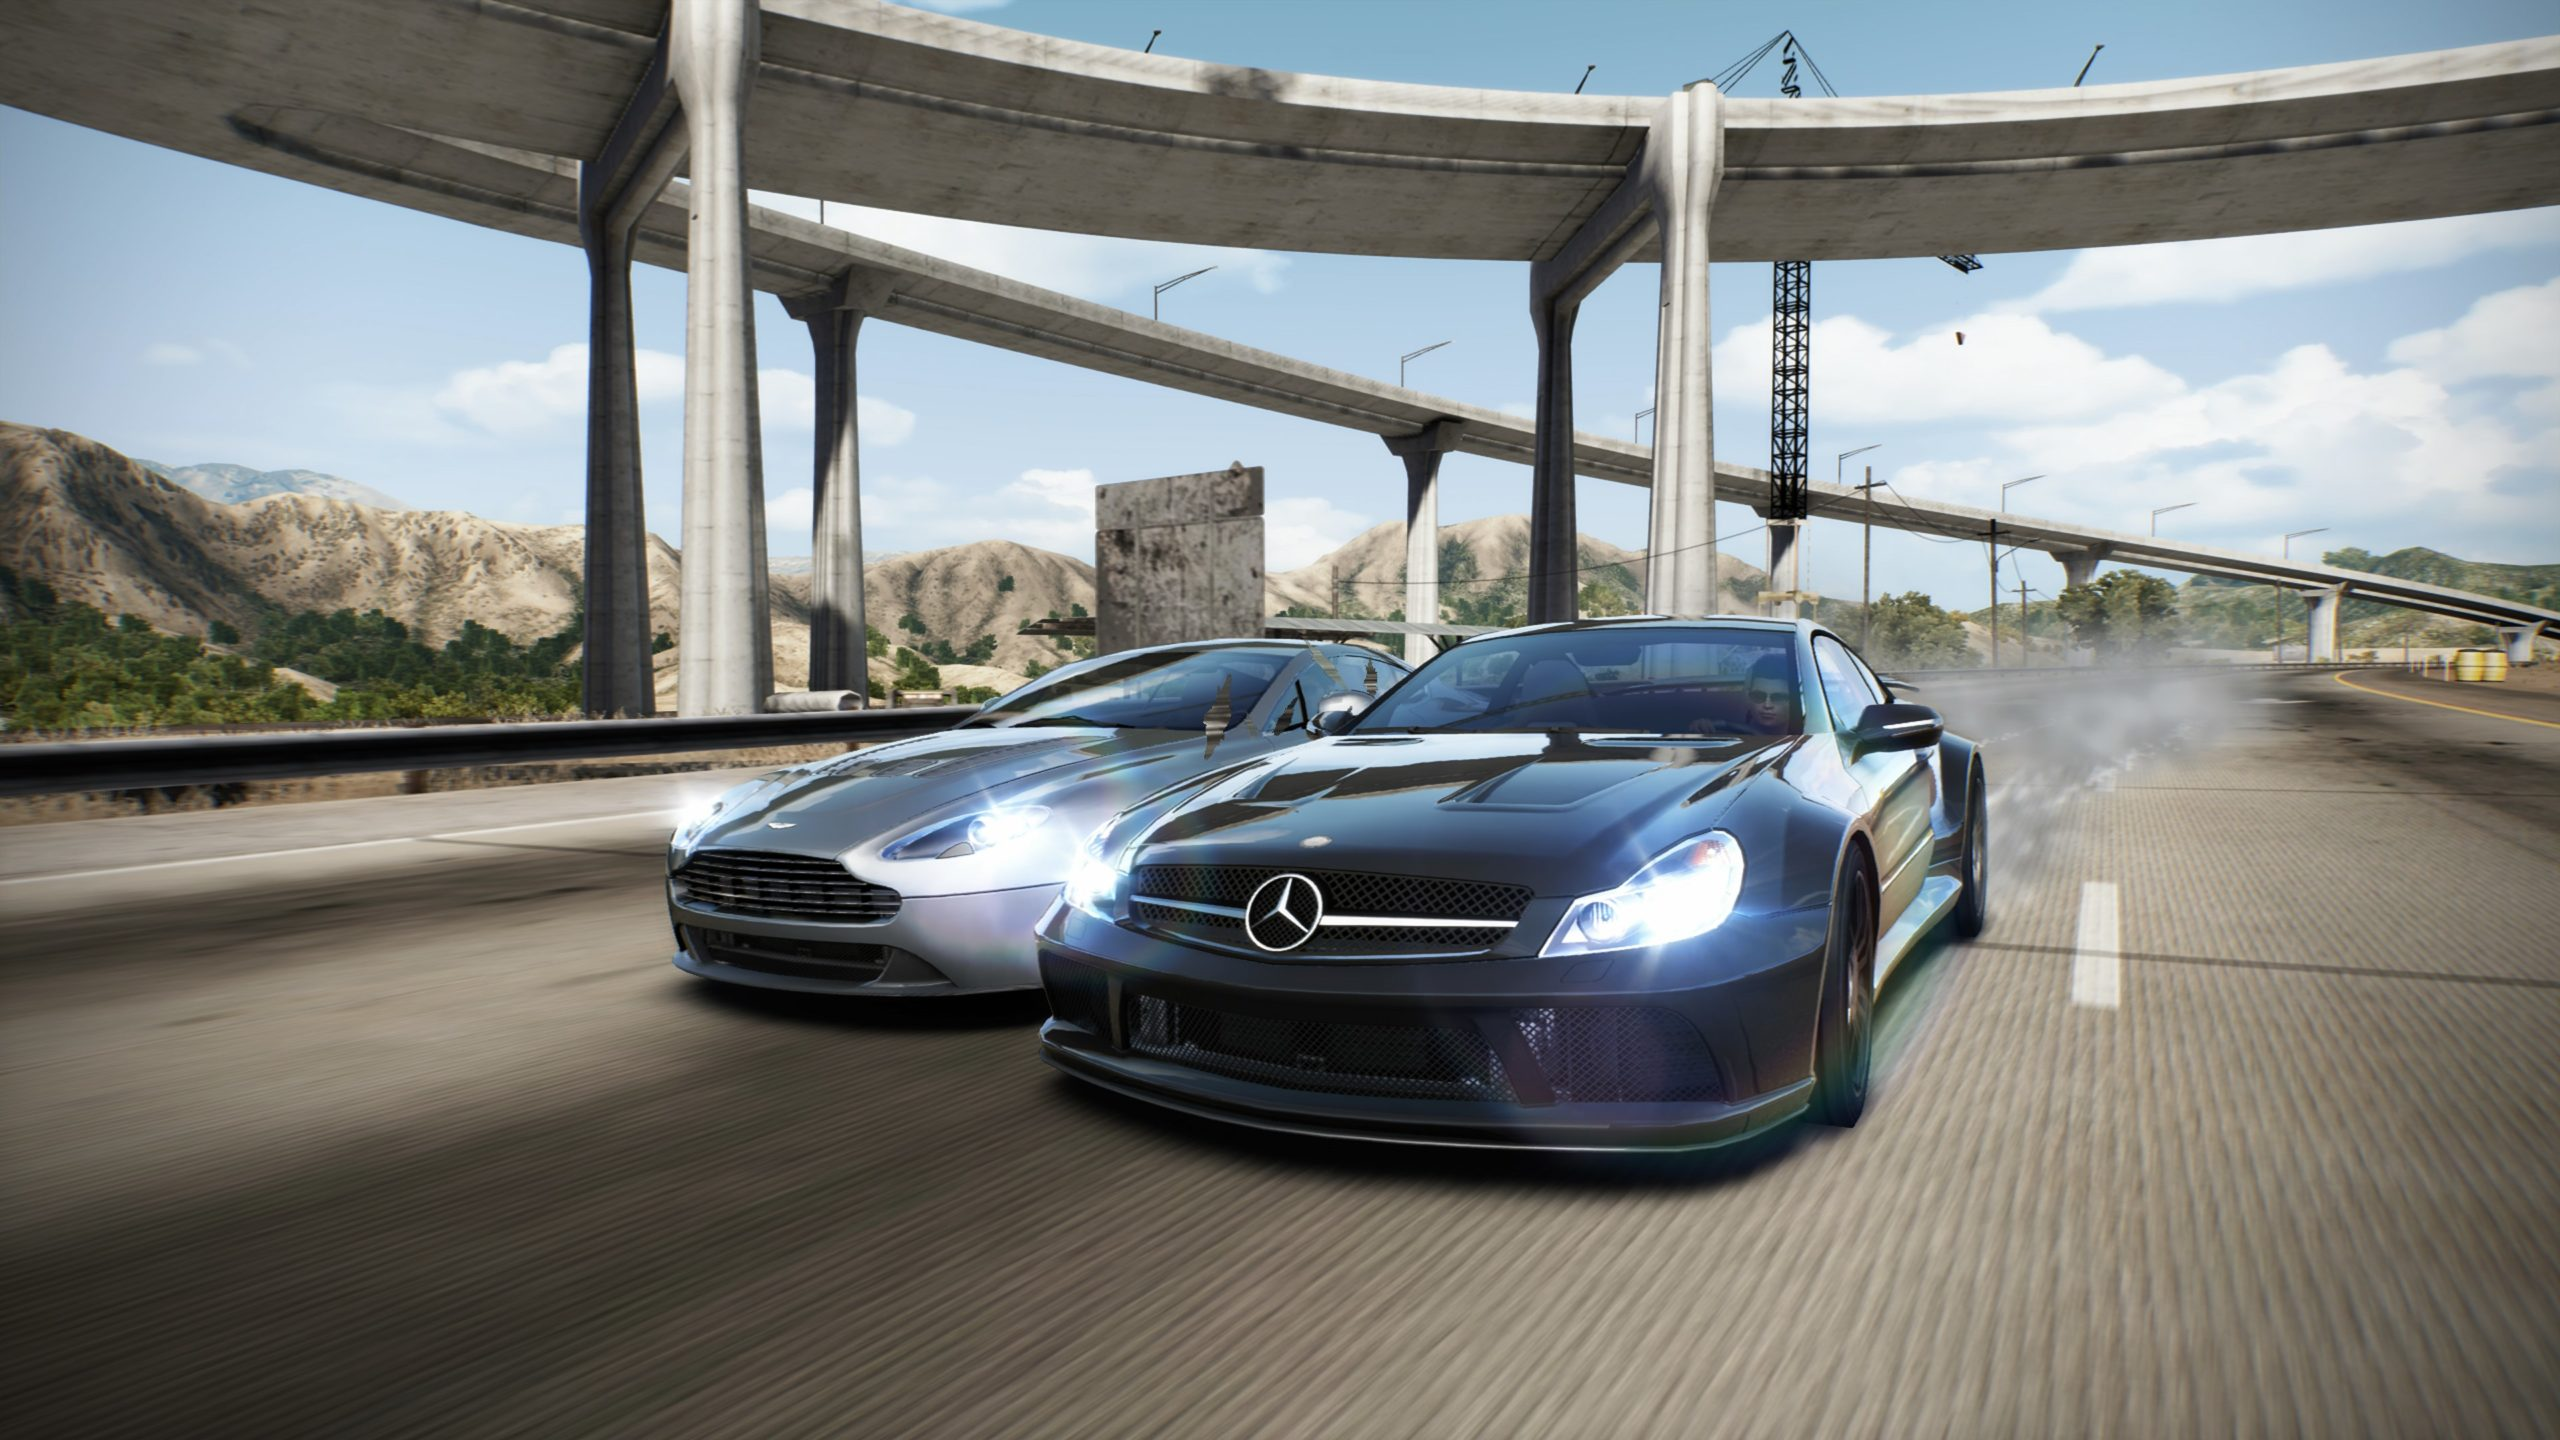 Need-For-Speed-Hot-Pursuit-Remastered-Duel-Aston-Martin-Mercedes-Benz-SL-65-AMG